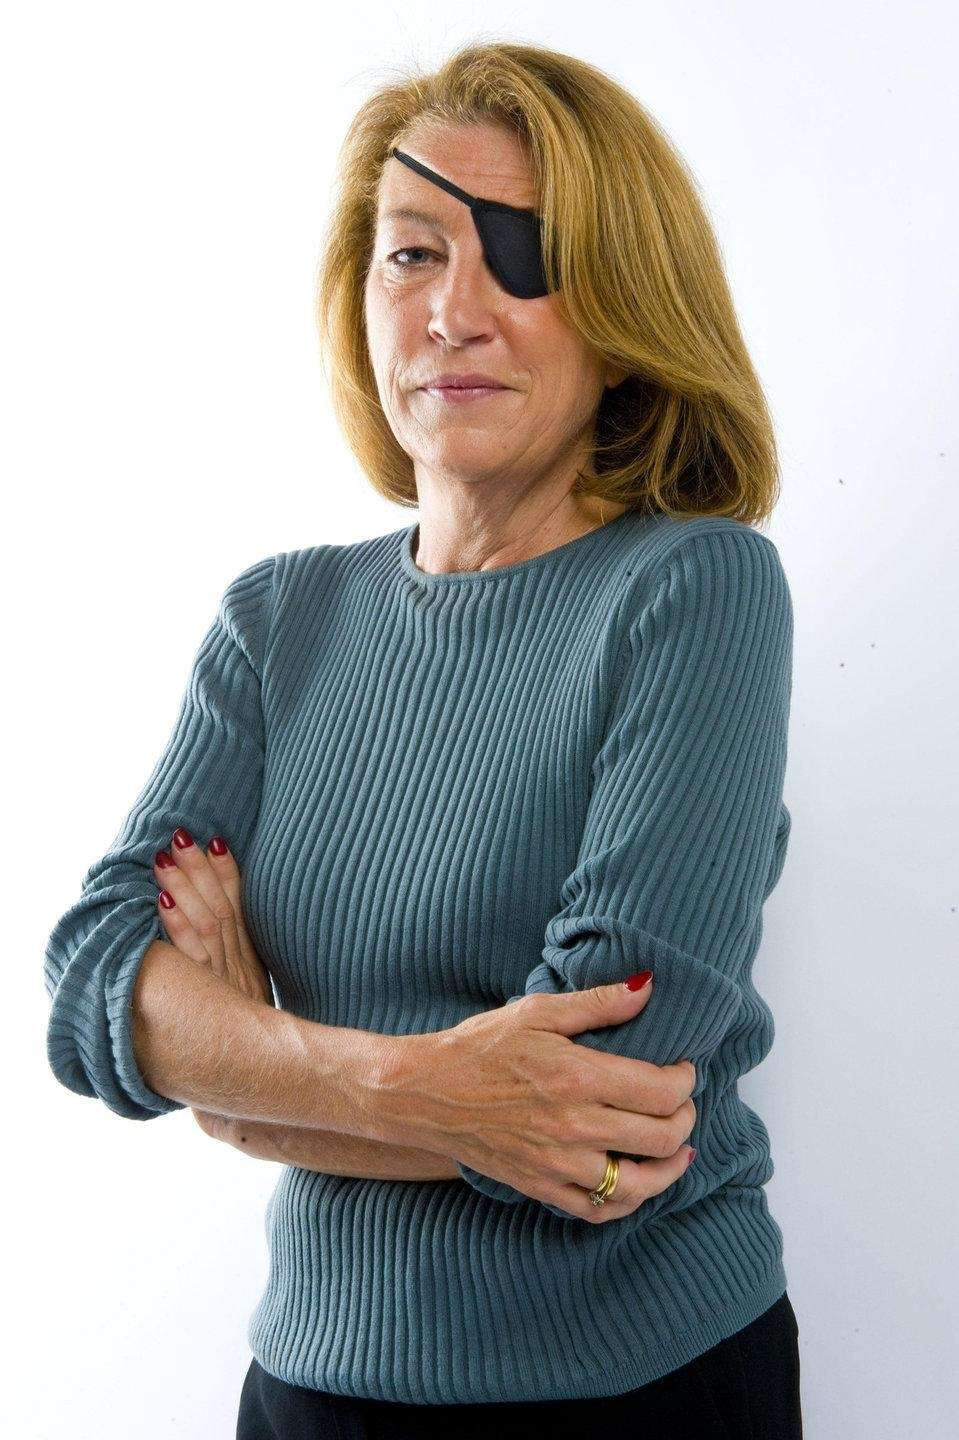 American journalist Marie Colvin, who earned international acclaim